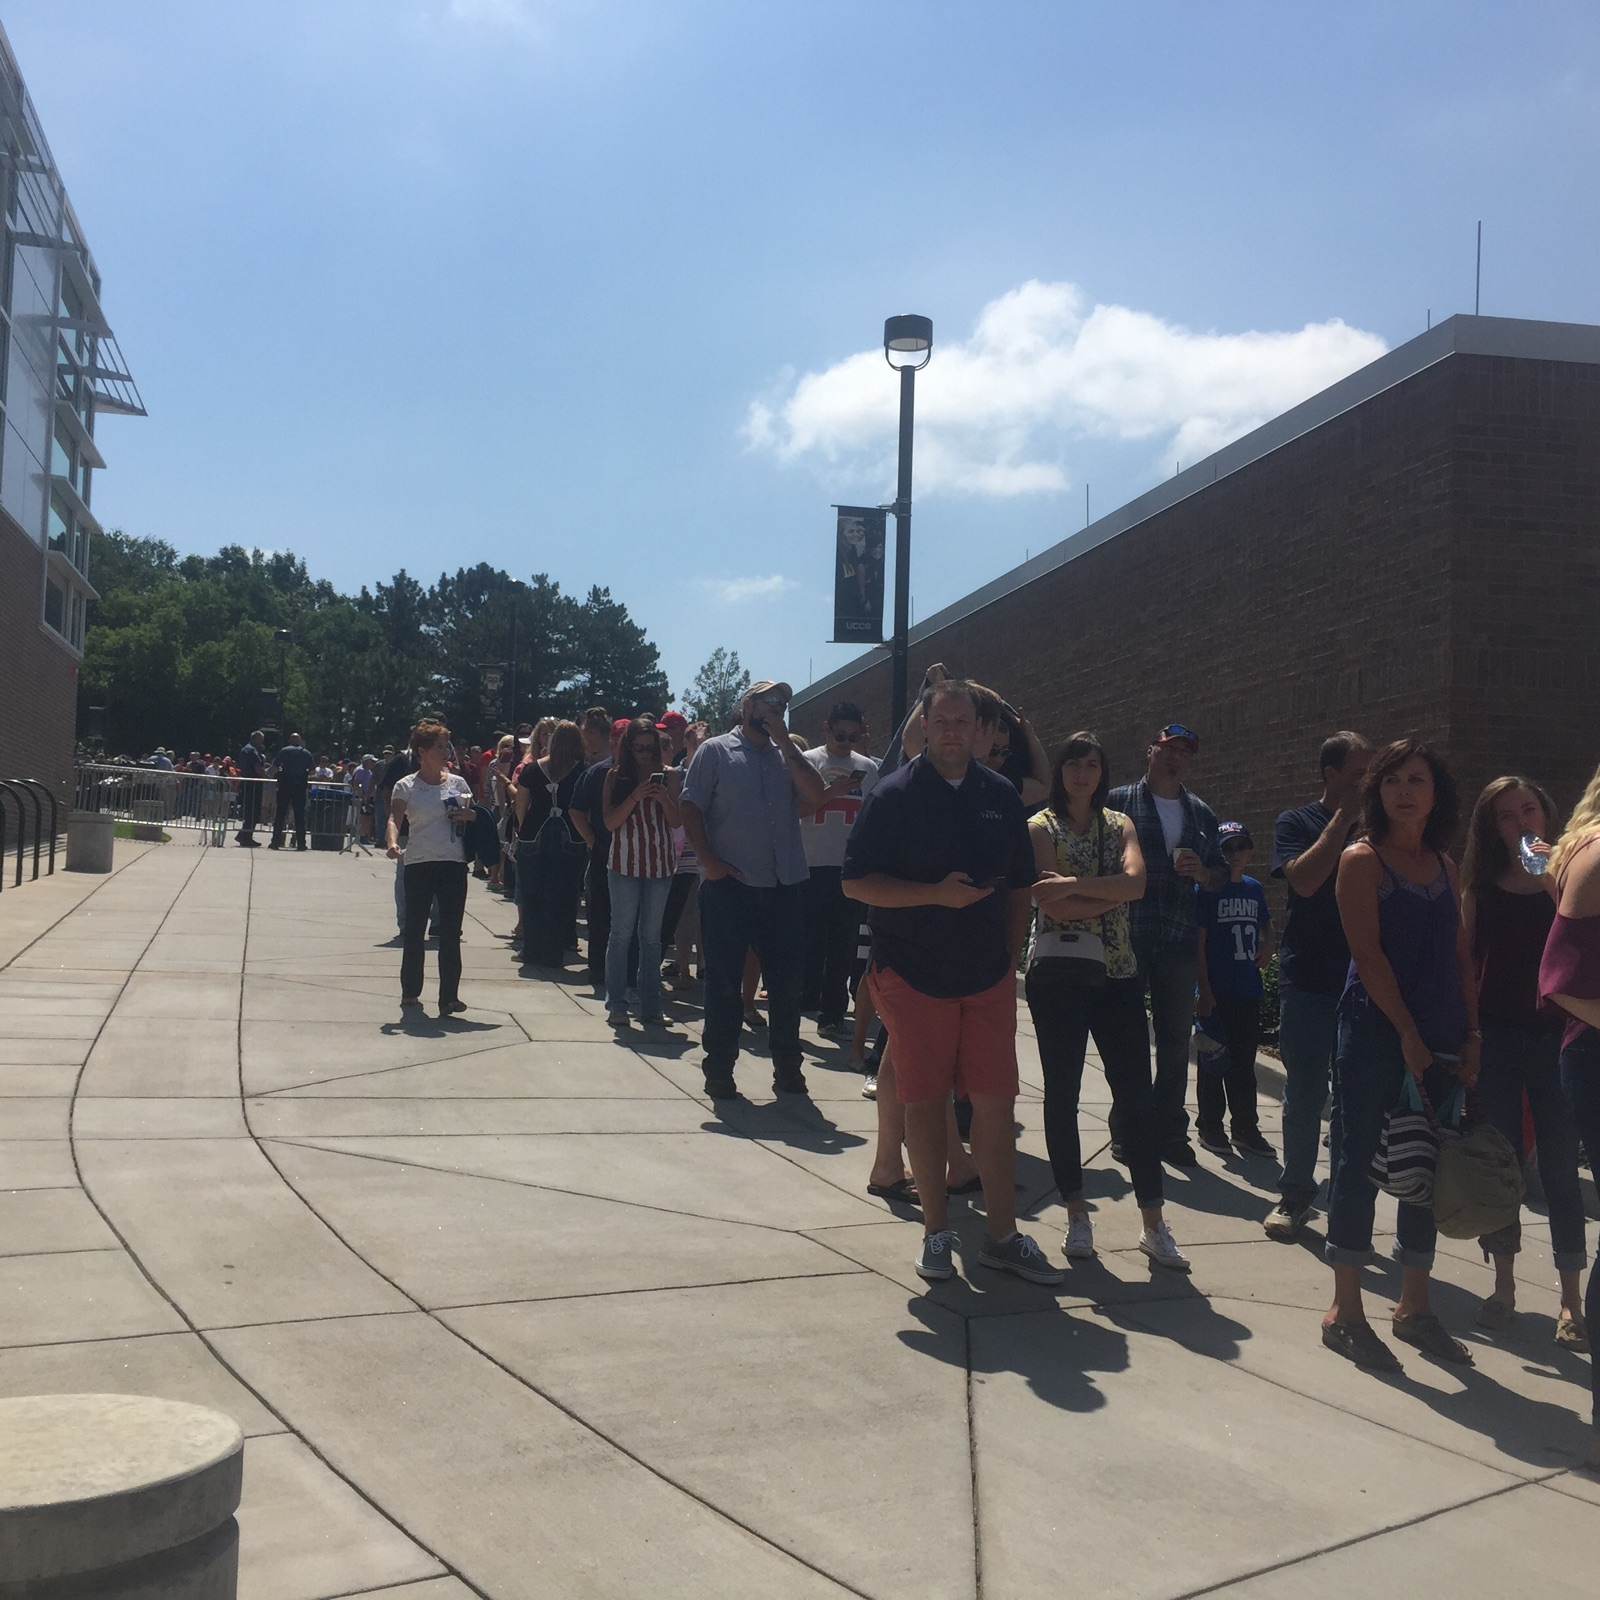 People lined up in July for a rally at UCCS featuring GOP presidential nominee Donald Trump.